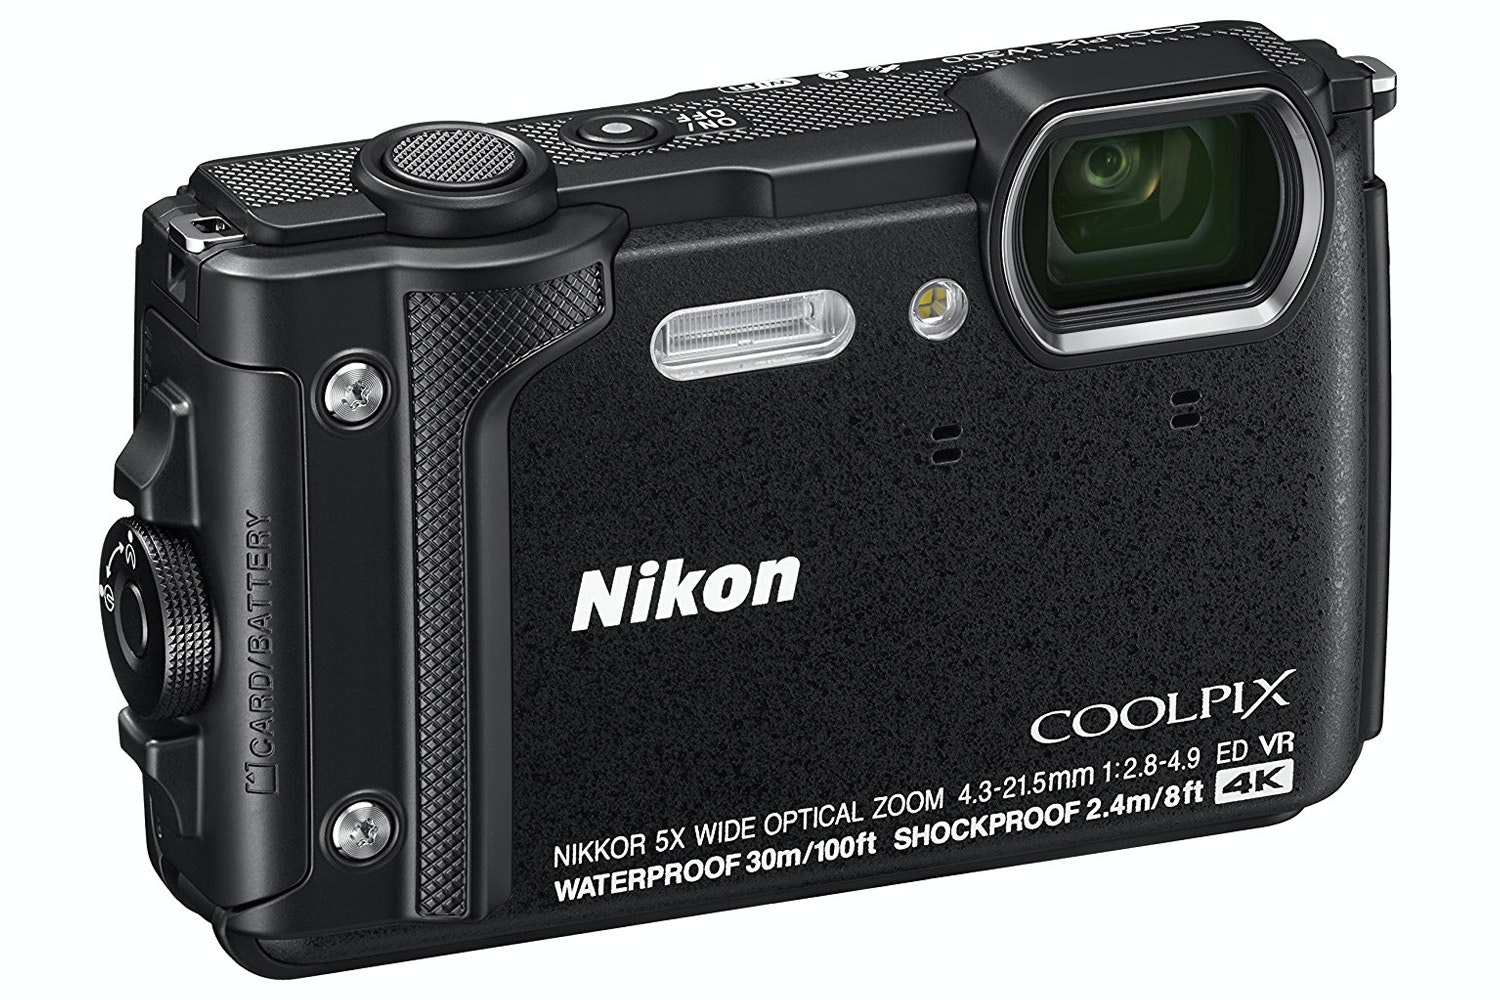 Nikon Coolpix Digital Camera W300 | Black